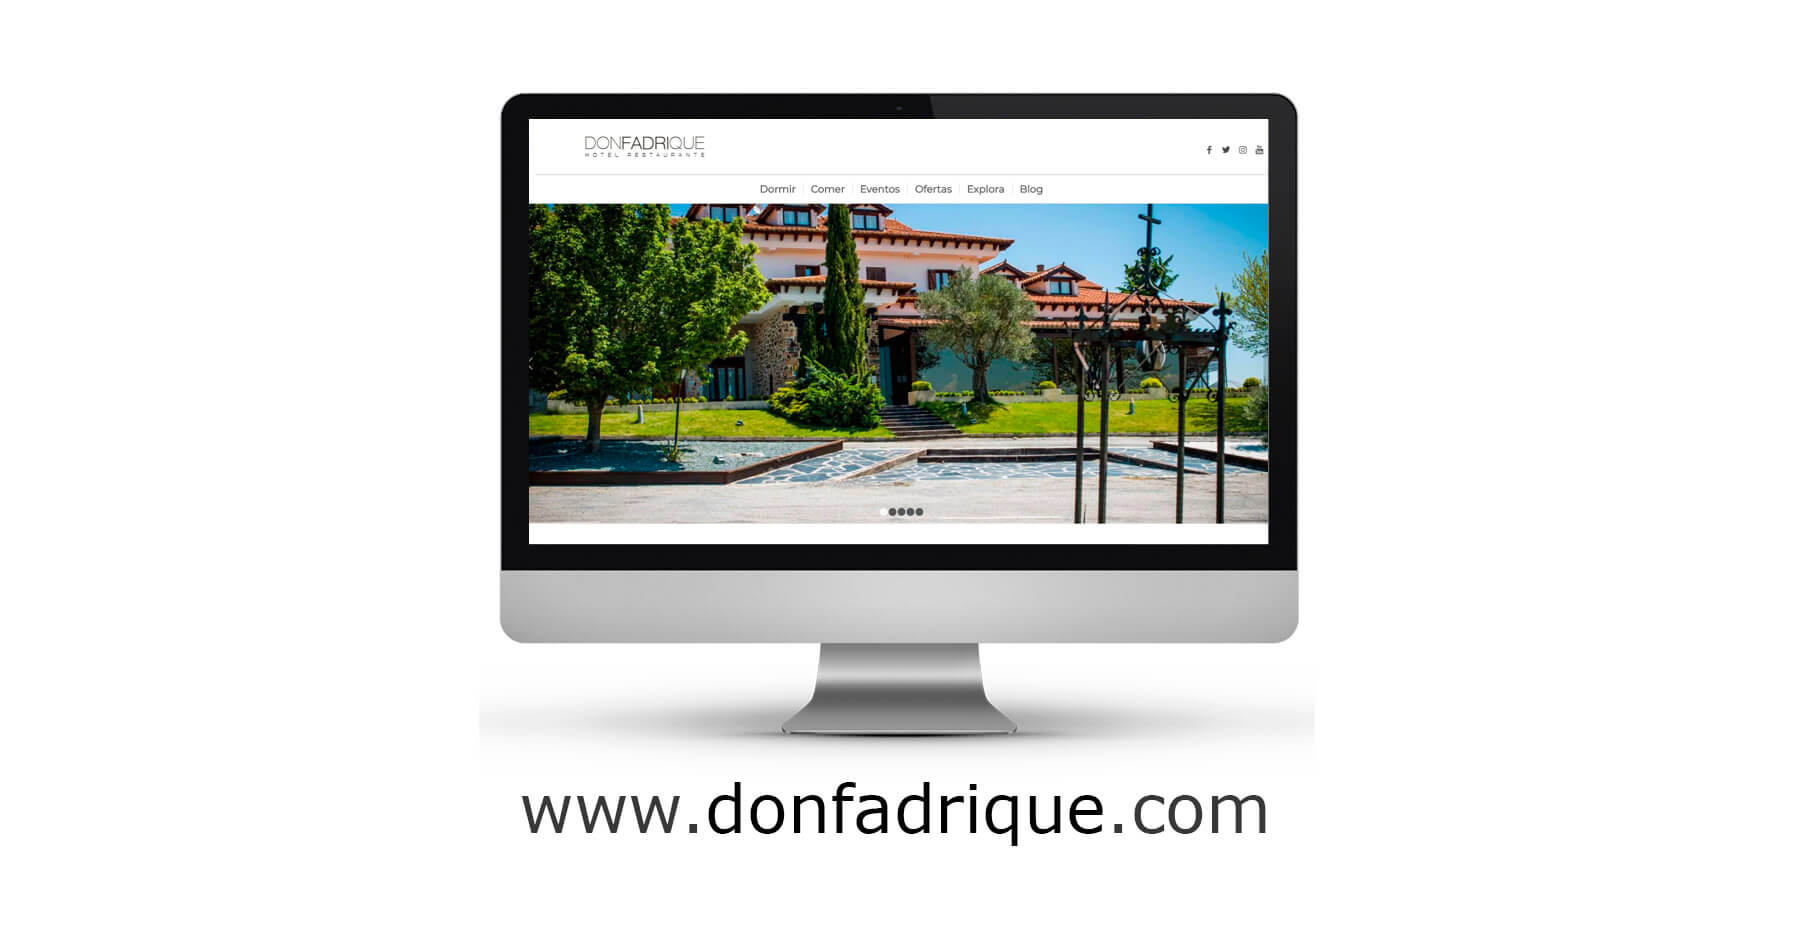 Restaurante Don Fadrique